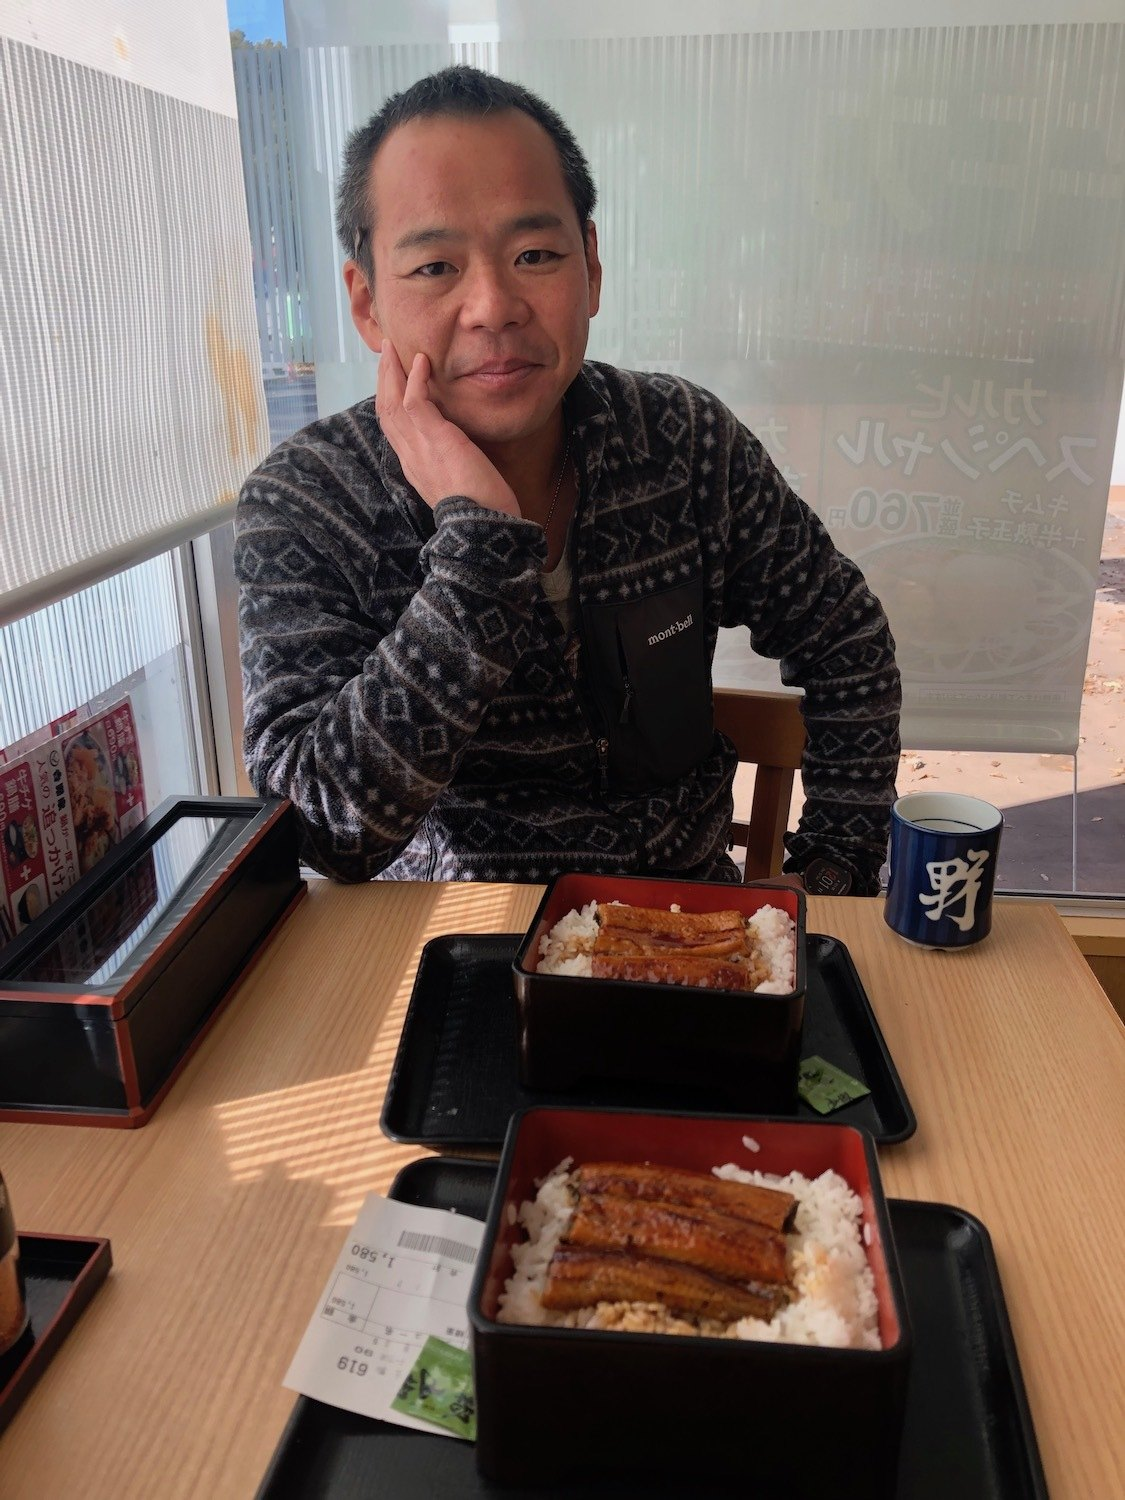 Yoshinaga often collects unagi samples from local grocery stores and restaurants. Sometimes he brings leftovers back to his lab, where they are enjoyed by students. March 2021